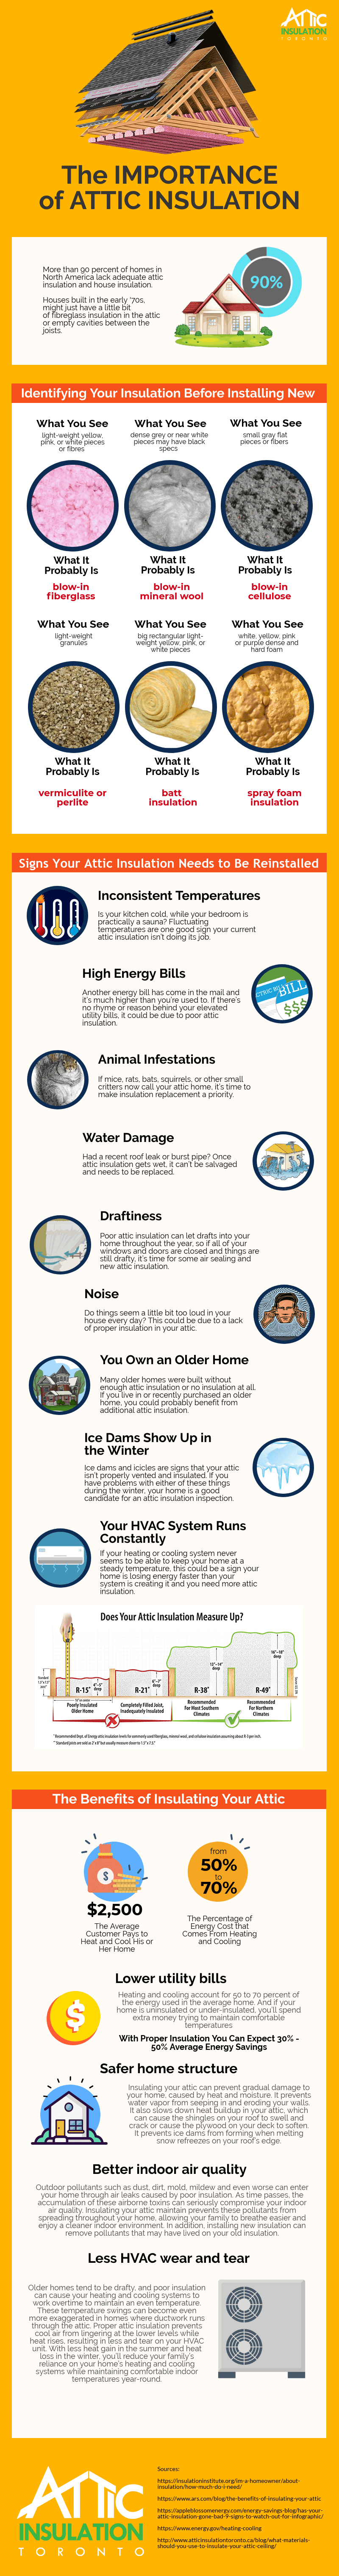 the importance of attic insulation Infographic